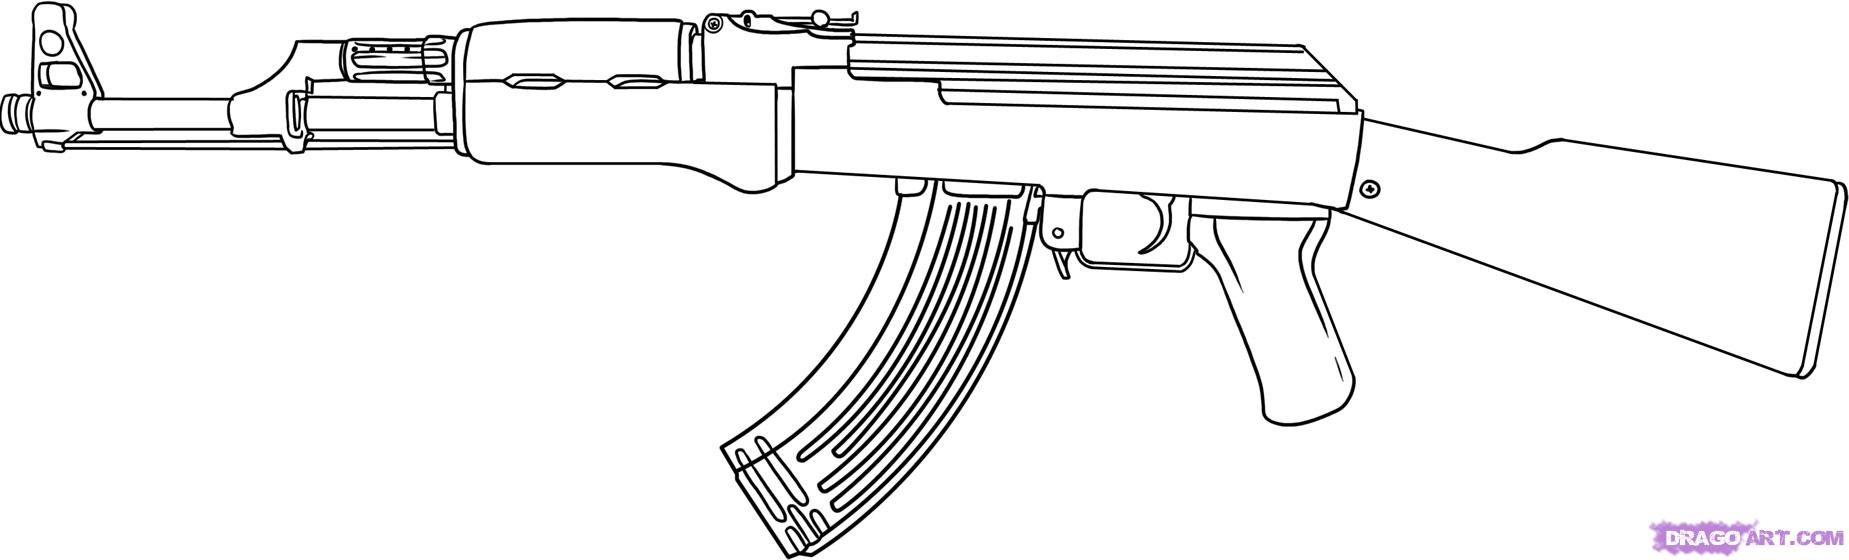 1849x560 Trend Gun Colouring Pages Good Eedcfbee On Col